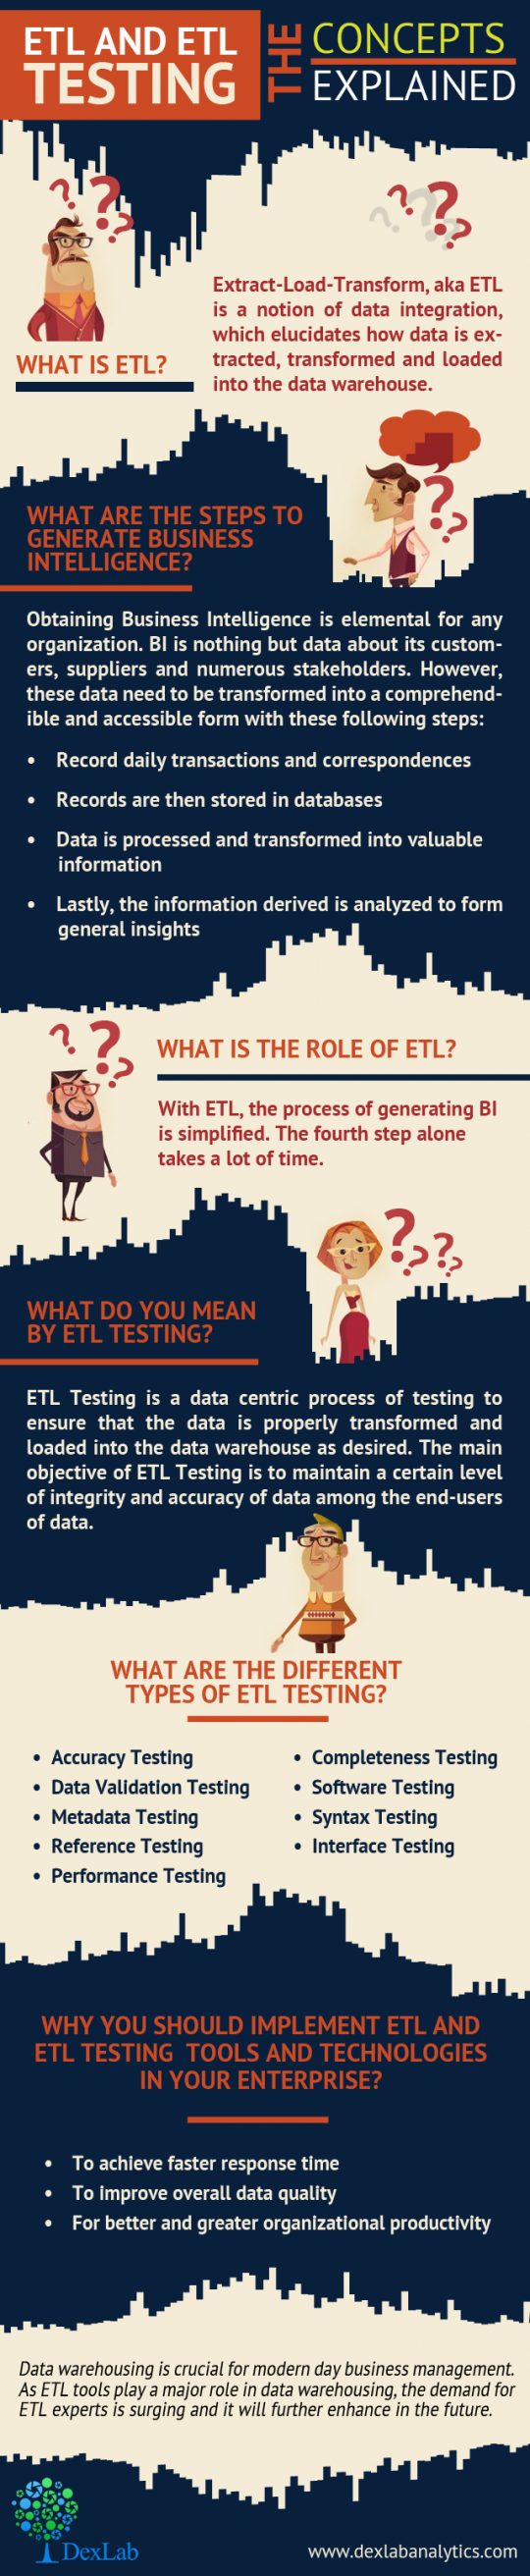 ETL and ETL Testing: A Detailed Evaluation